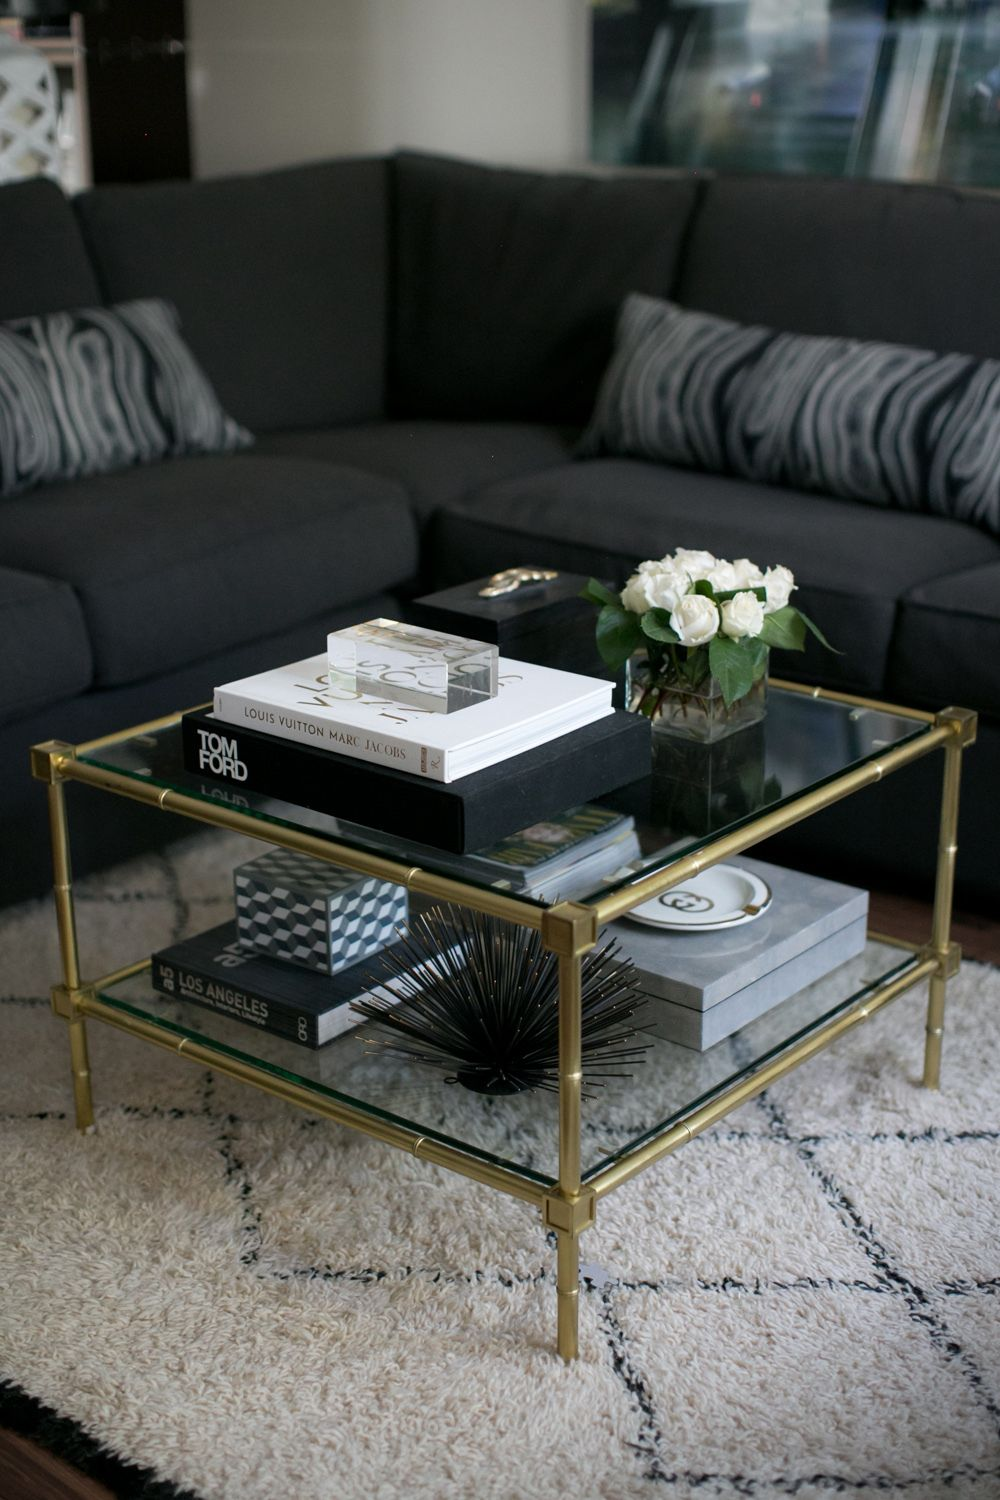 Chic Edgy Home Of Small Shop Coffee Table Decor Living Room Coffee Table Living Room Modern Coffee Table [ 1500 x 1000 Pixel ]